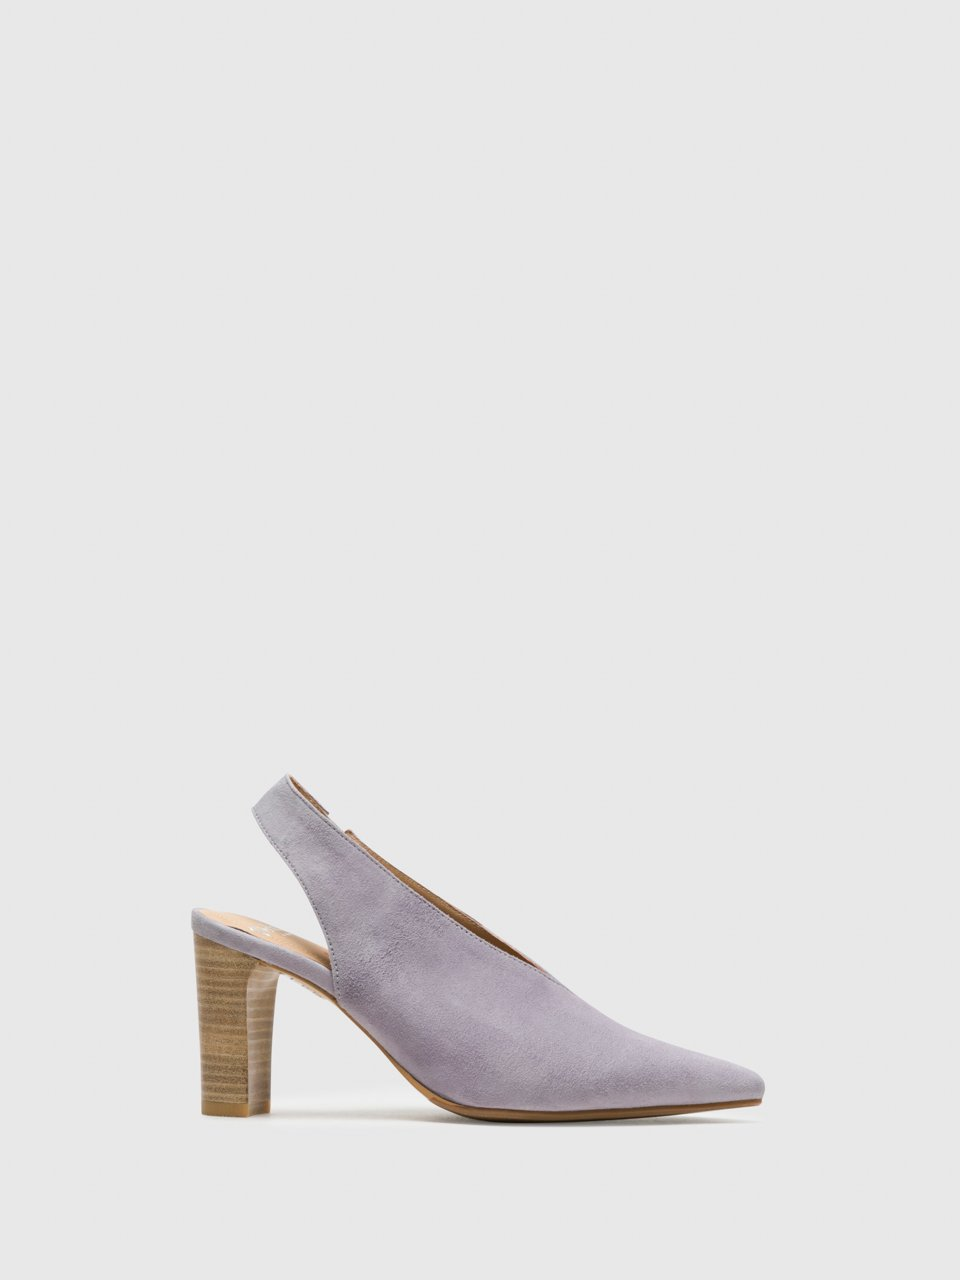 Perlato Purple Sling-Back Pumps Shoes